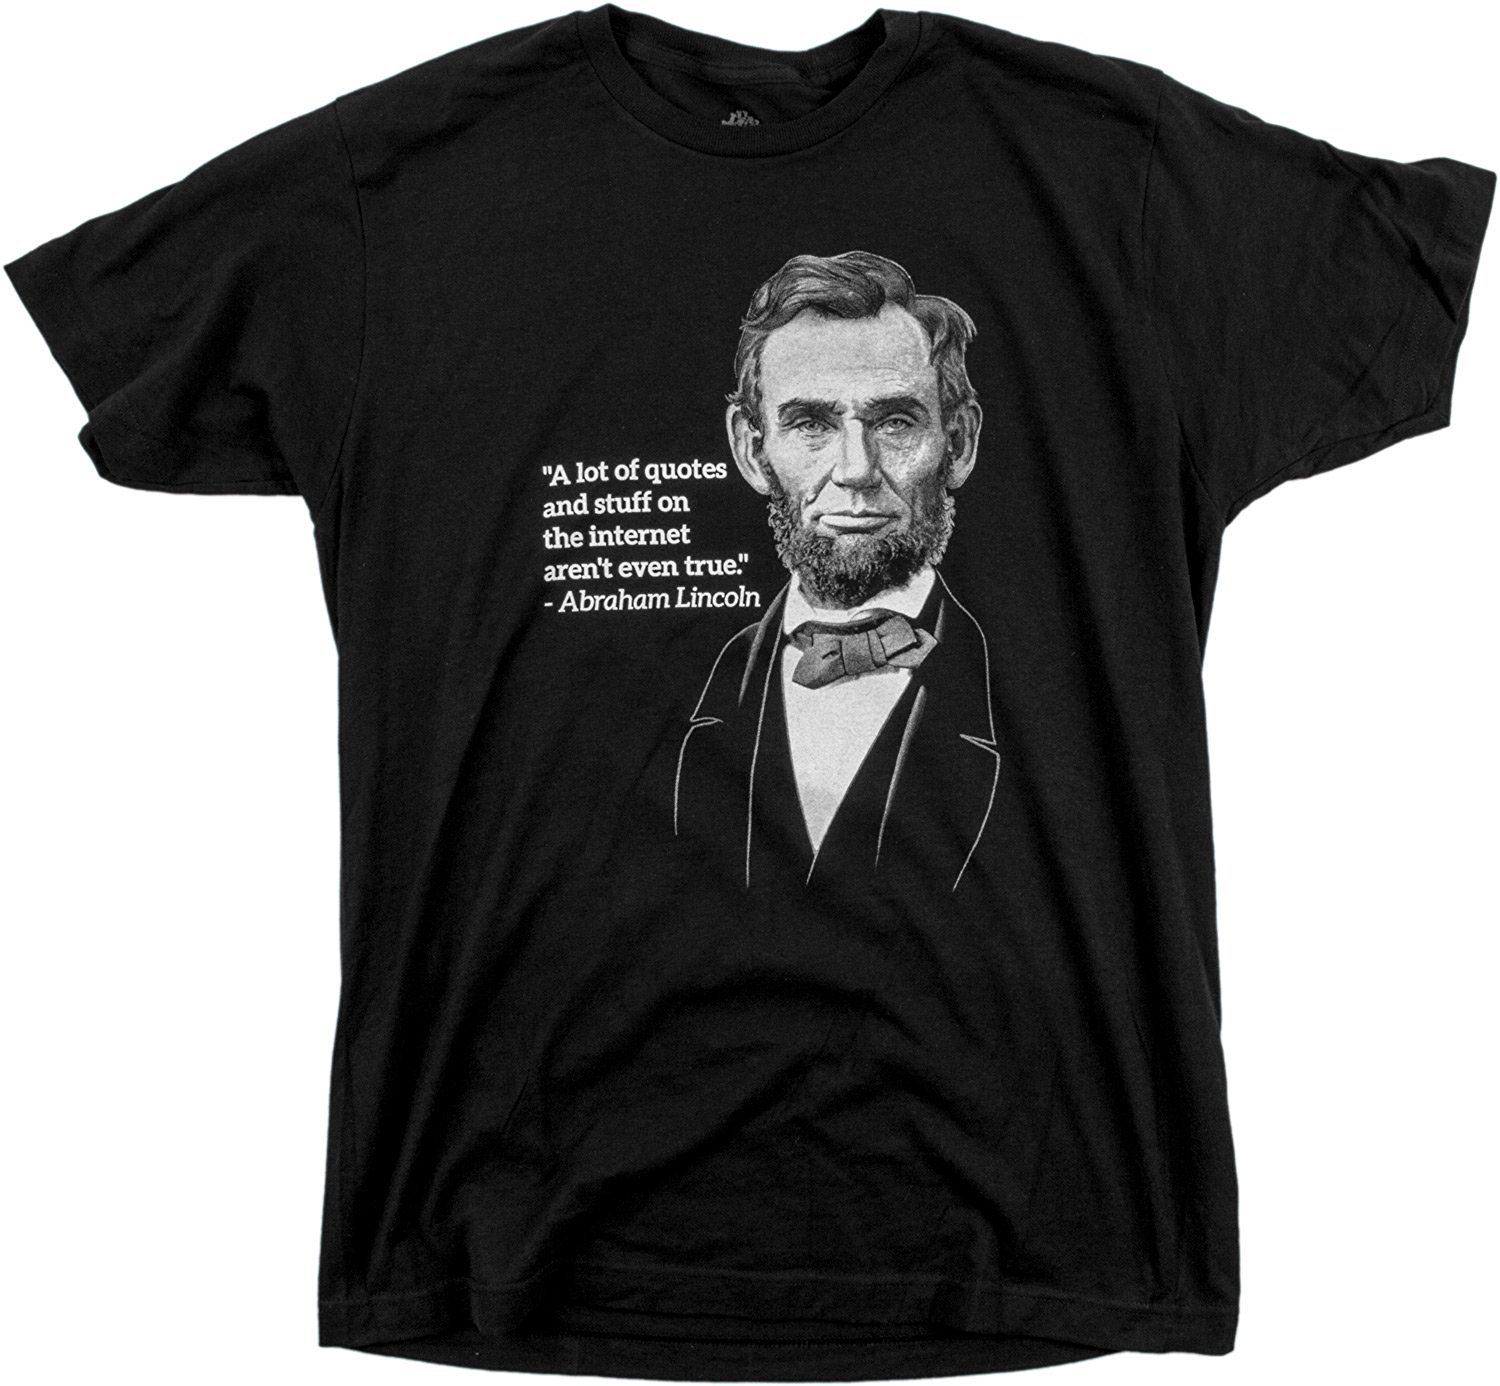 2019 Fashion Summer Style Internet Quotes aren't True - Abe Lincoln | Funny Random Reddit Unisex T-shirt Tee shirt image